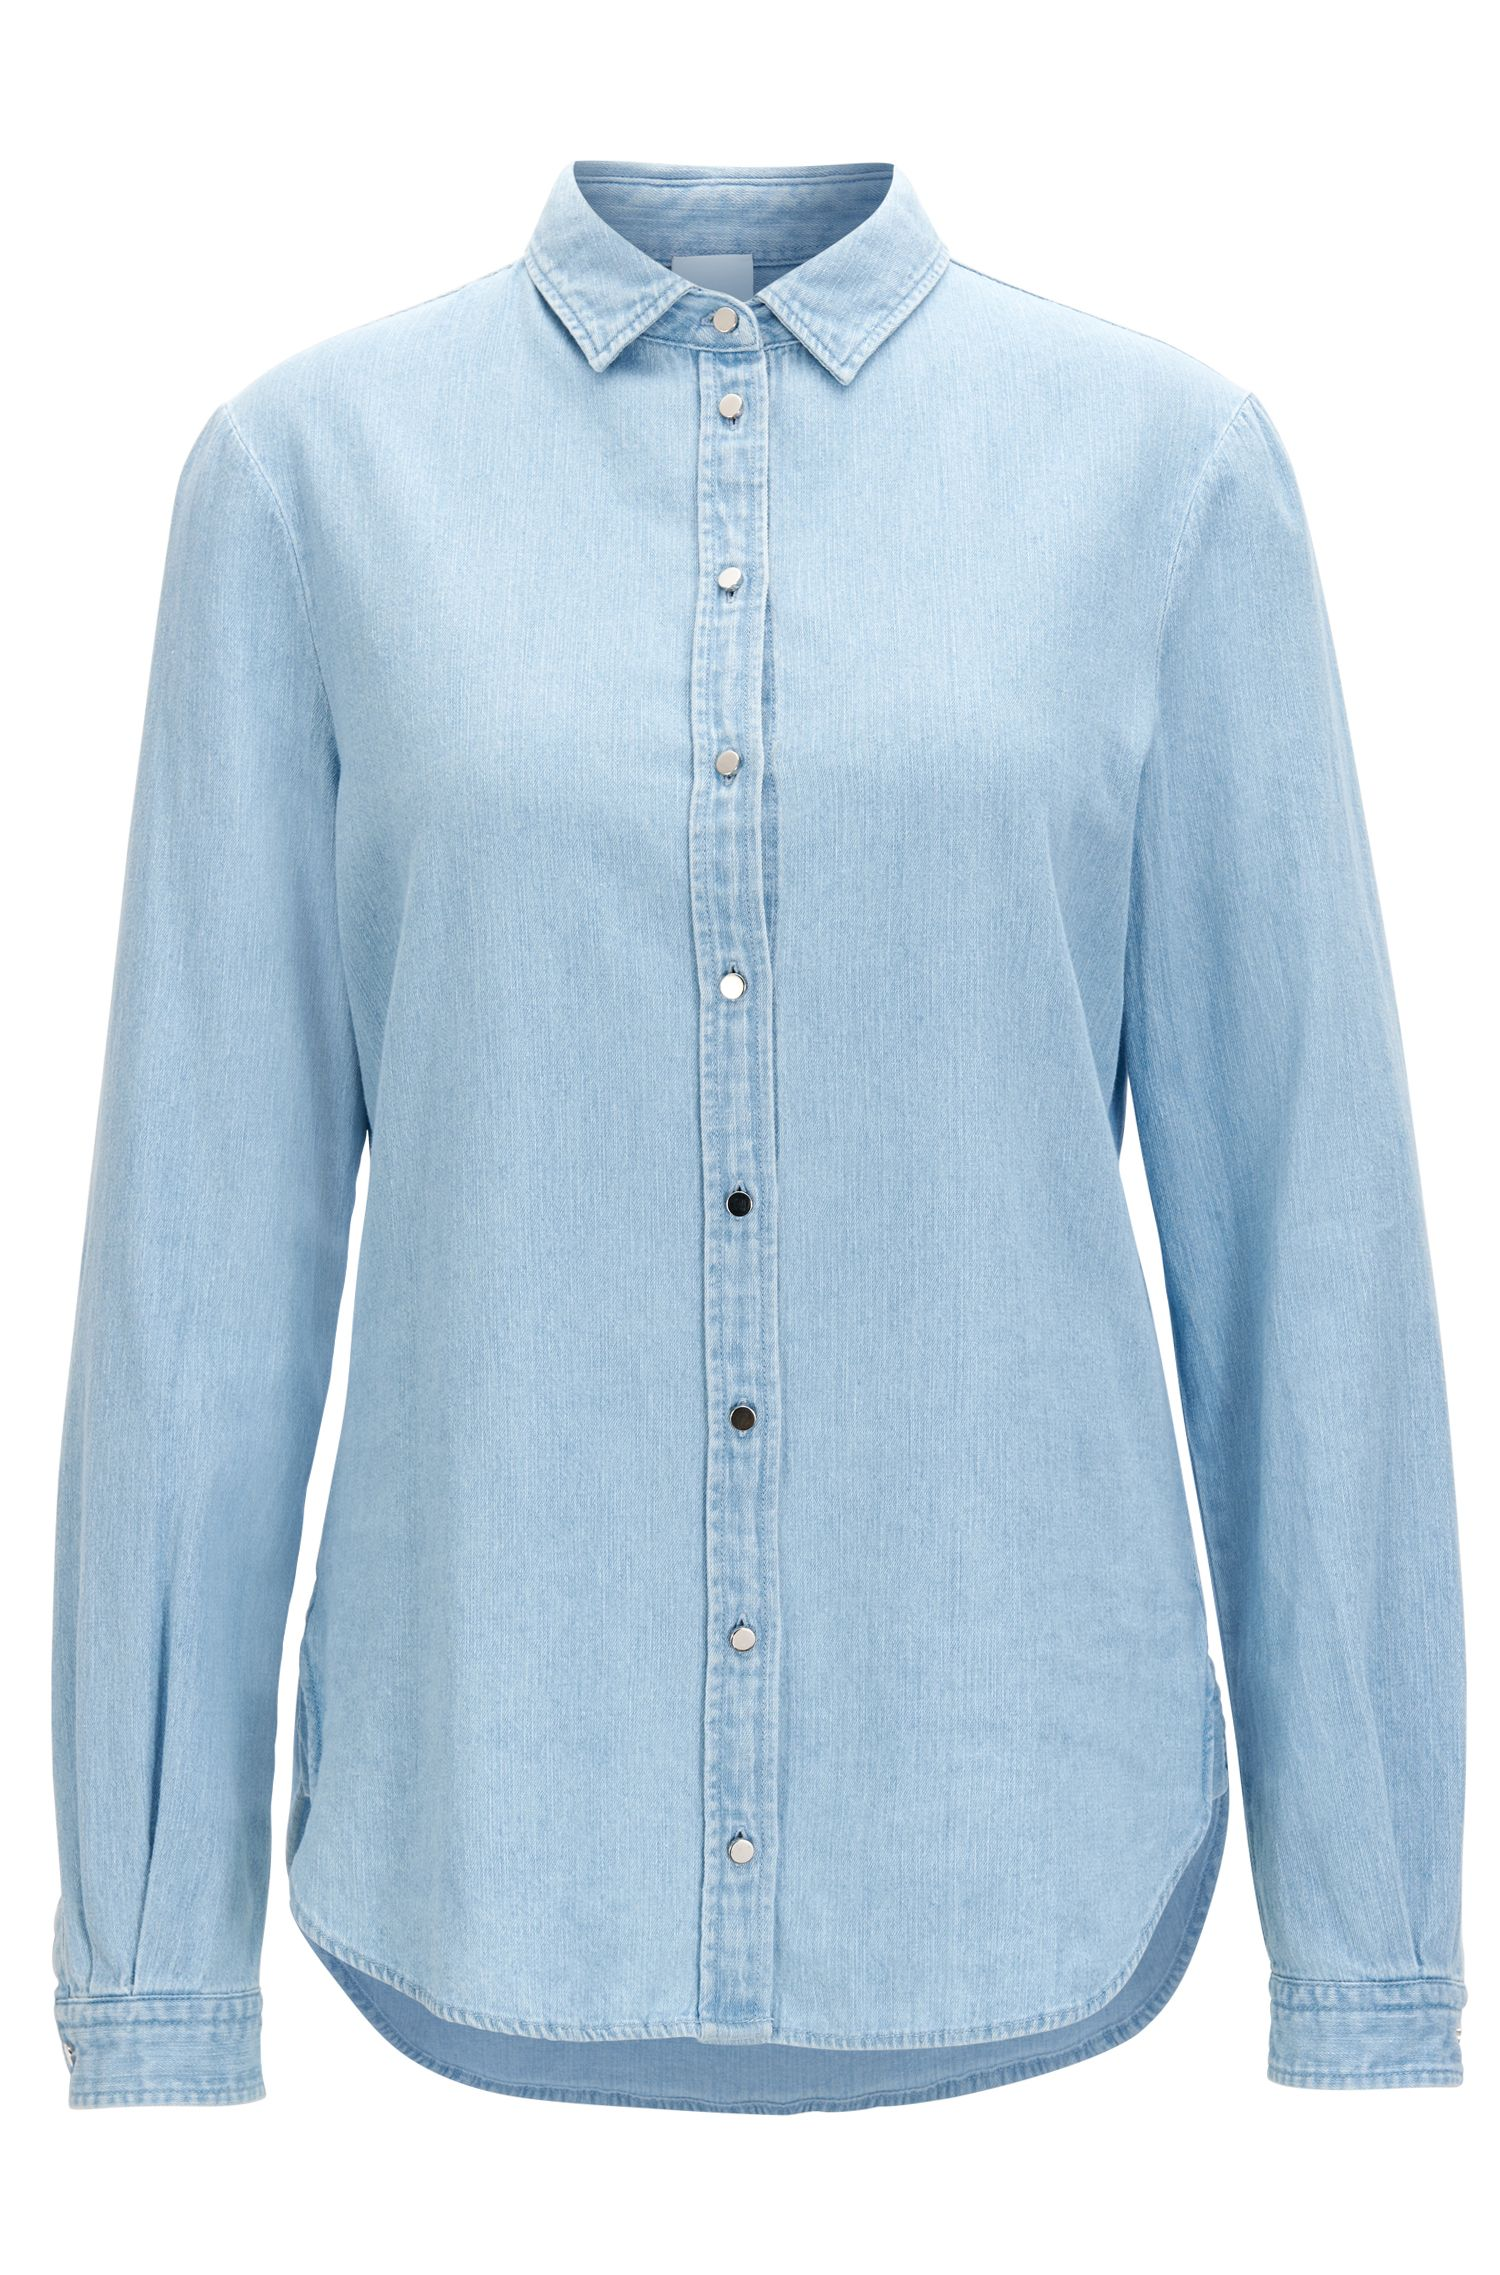 Regular-fit denimblouse met bleekwassing